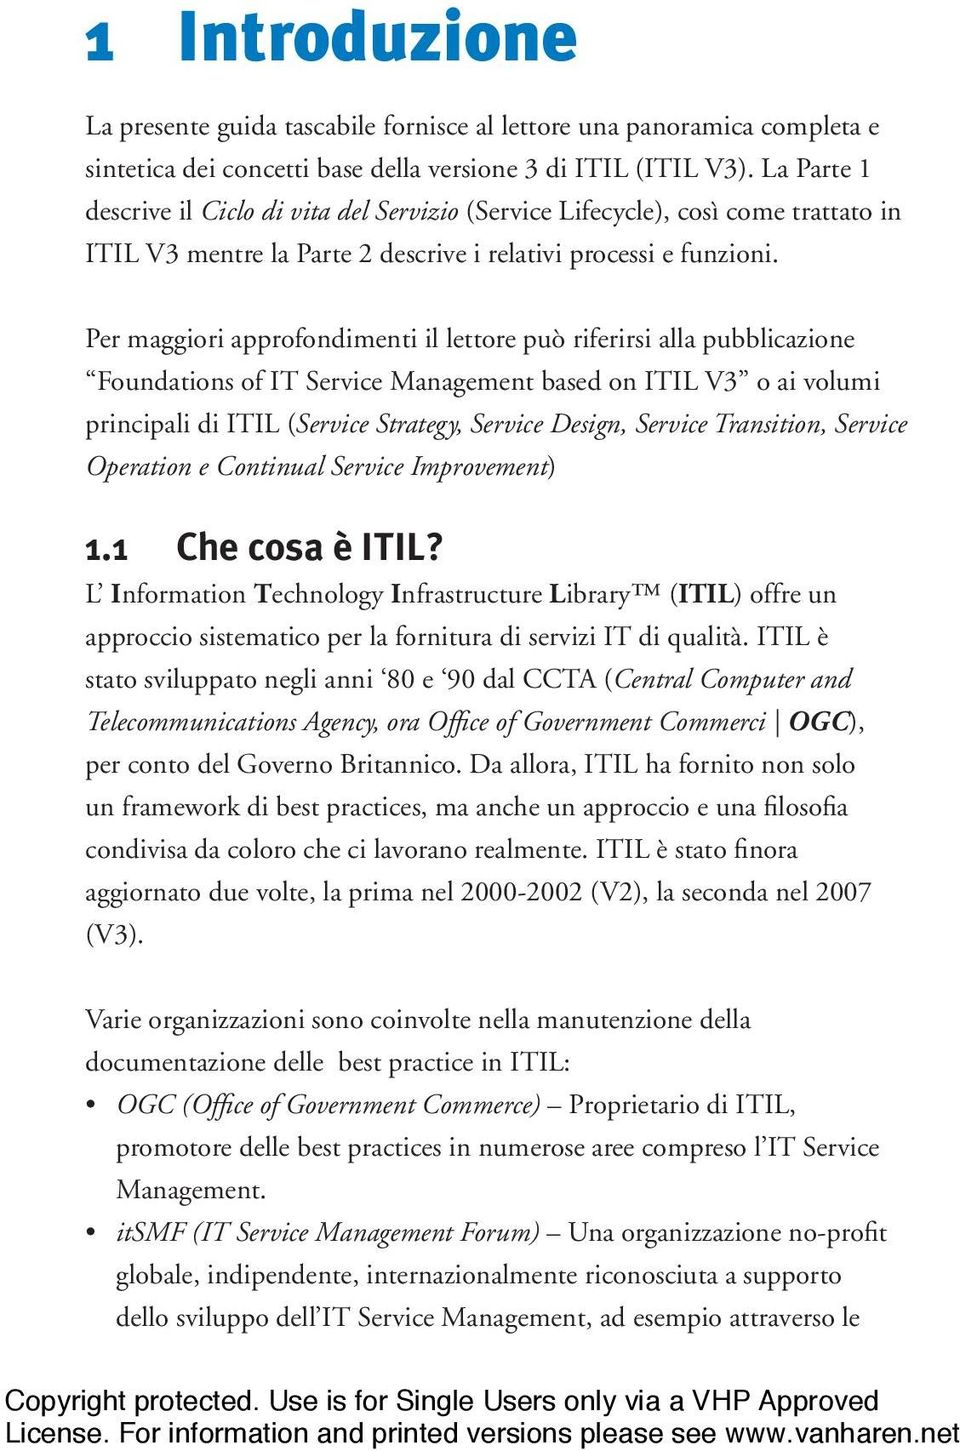 Per maggiori approfondimenti il lettore può riferirsi alla pubblicazione Foundations of IT Service Management based on ITIL V3 o ai volumi principali di ITIL (Service Strategy, Service Design,